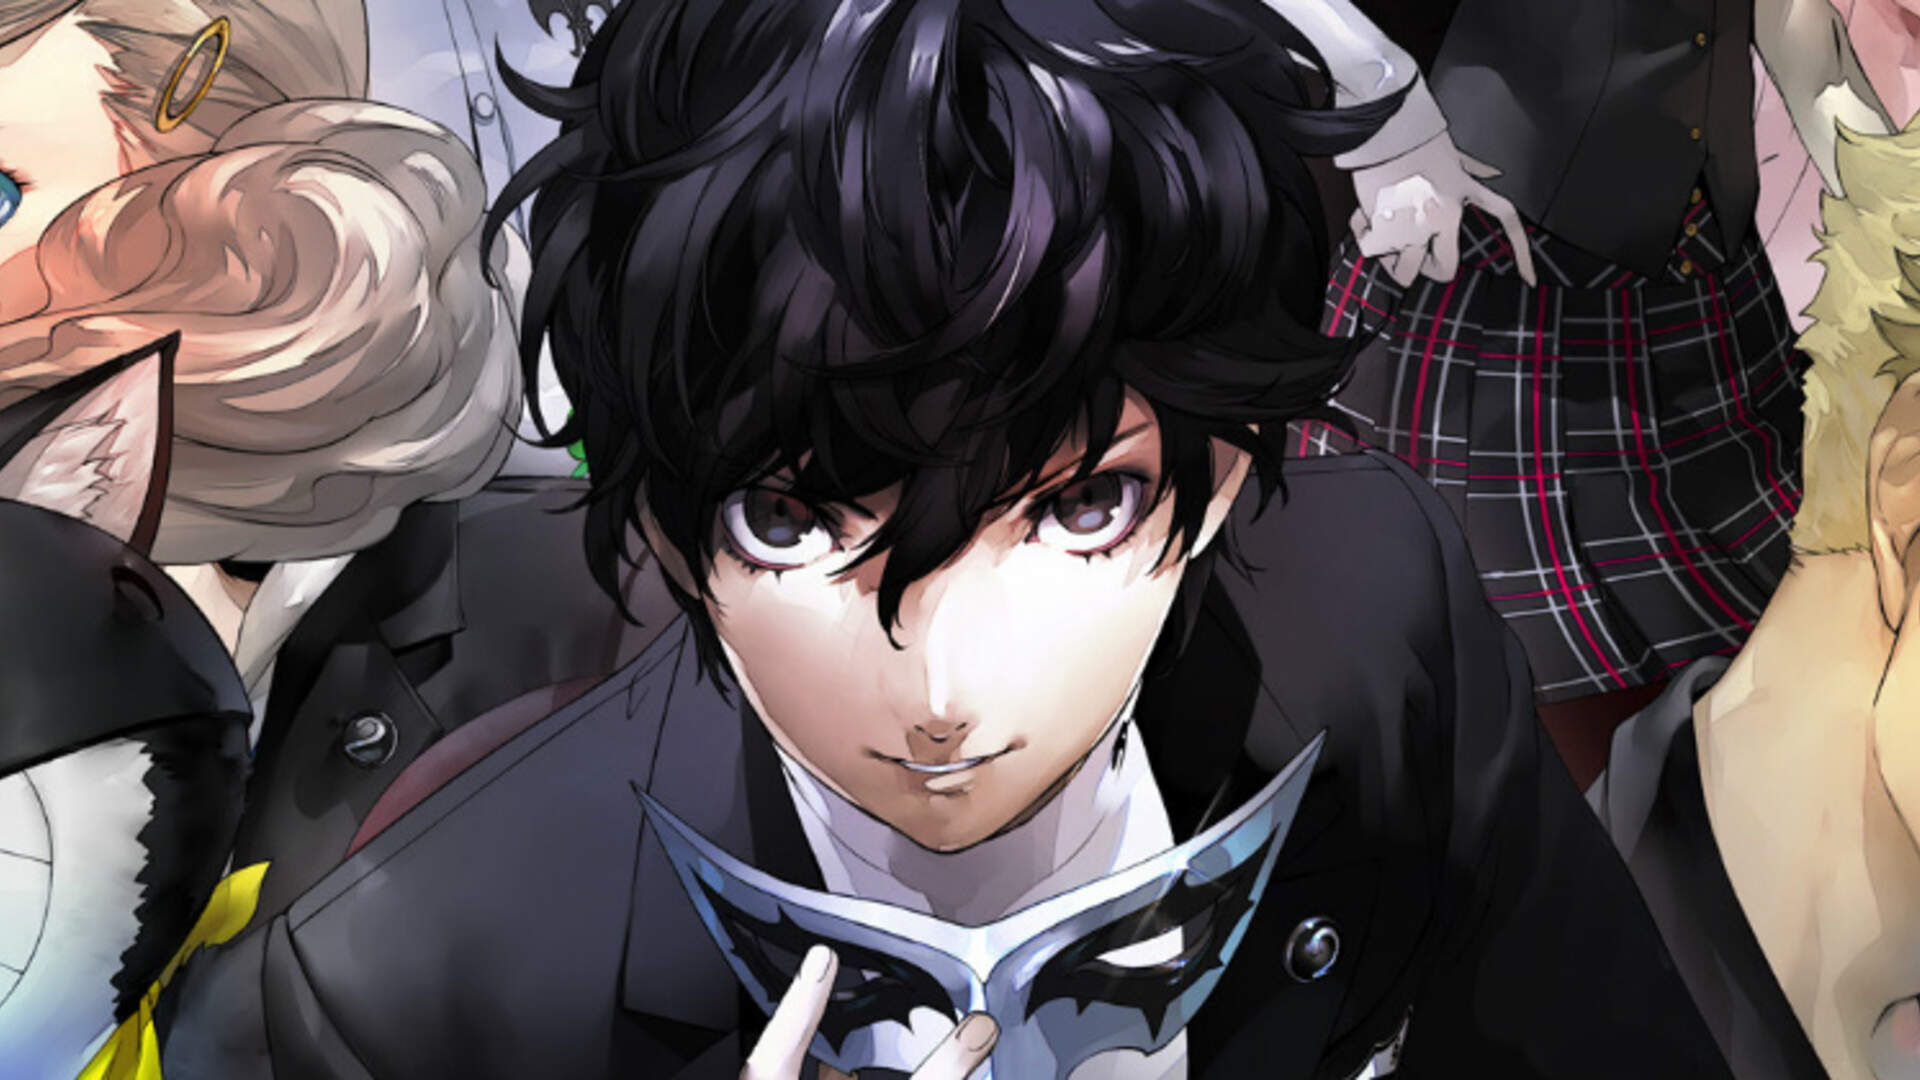 Persona 5 Ruins Relationships, Launches on Valentine's Day, Feb 14, 2017